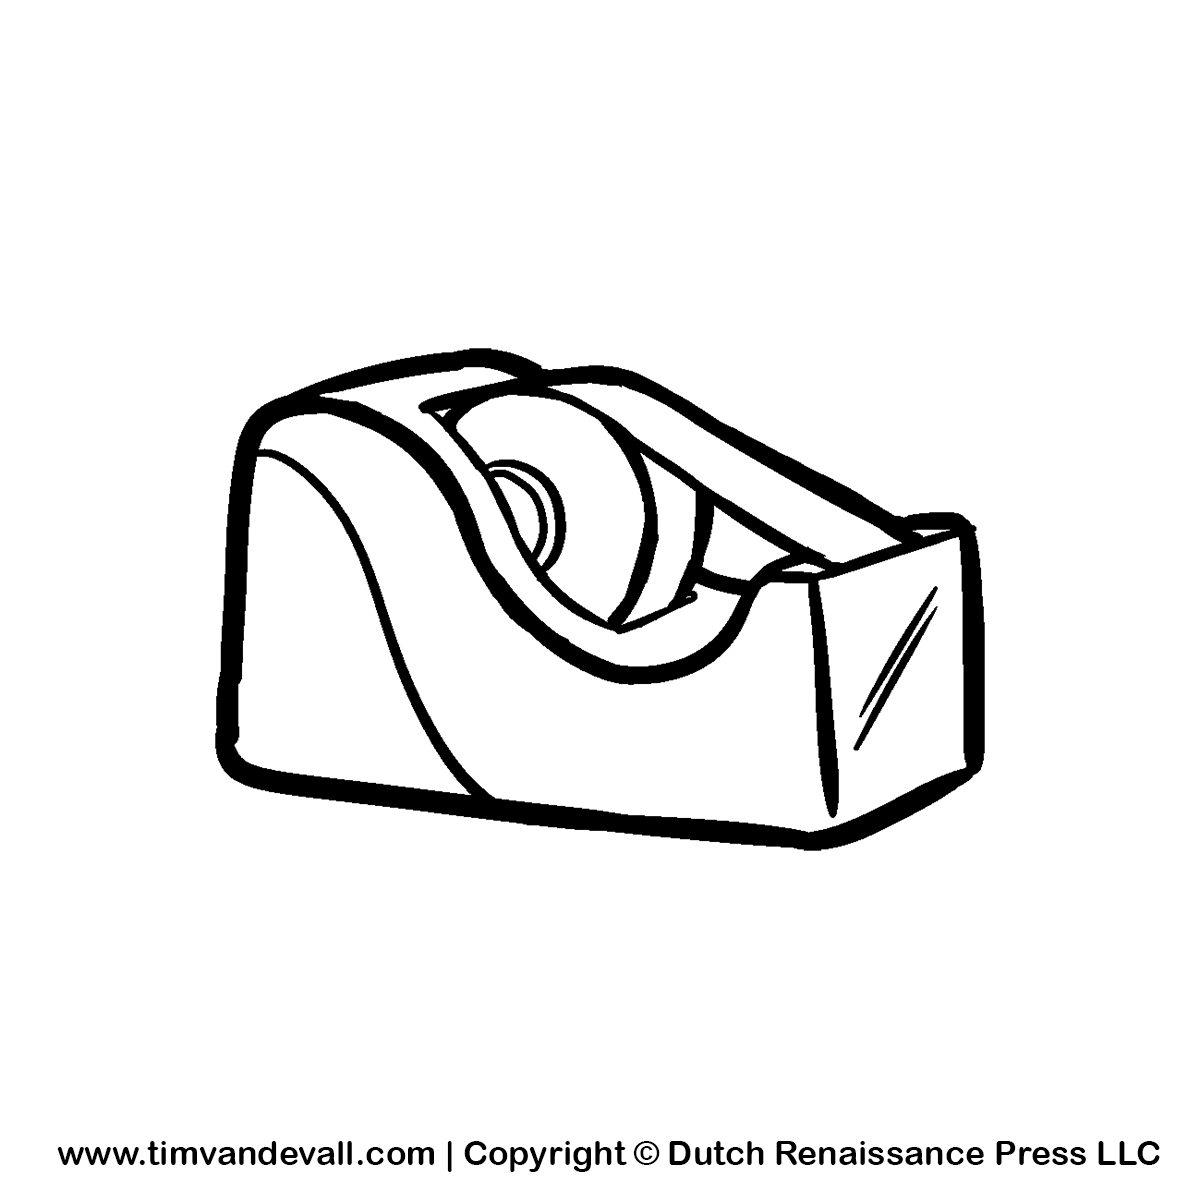 Scotch clipart tape dispenser #7